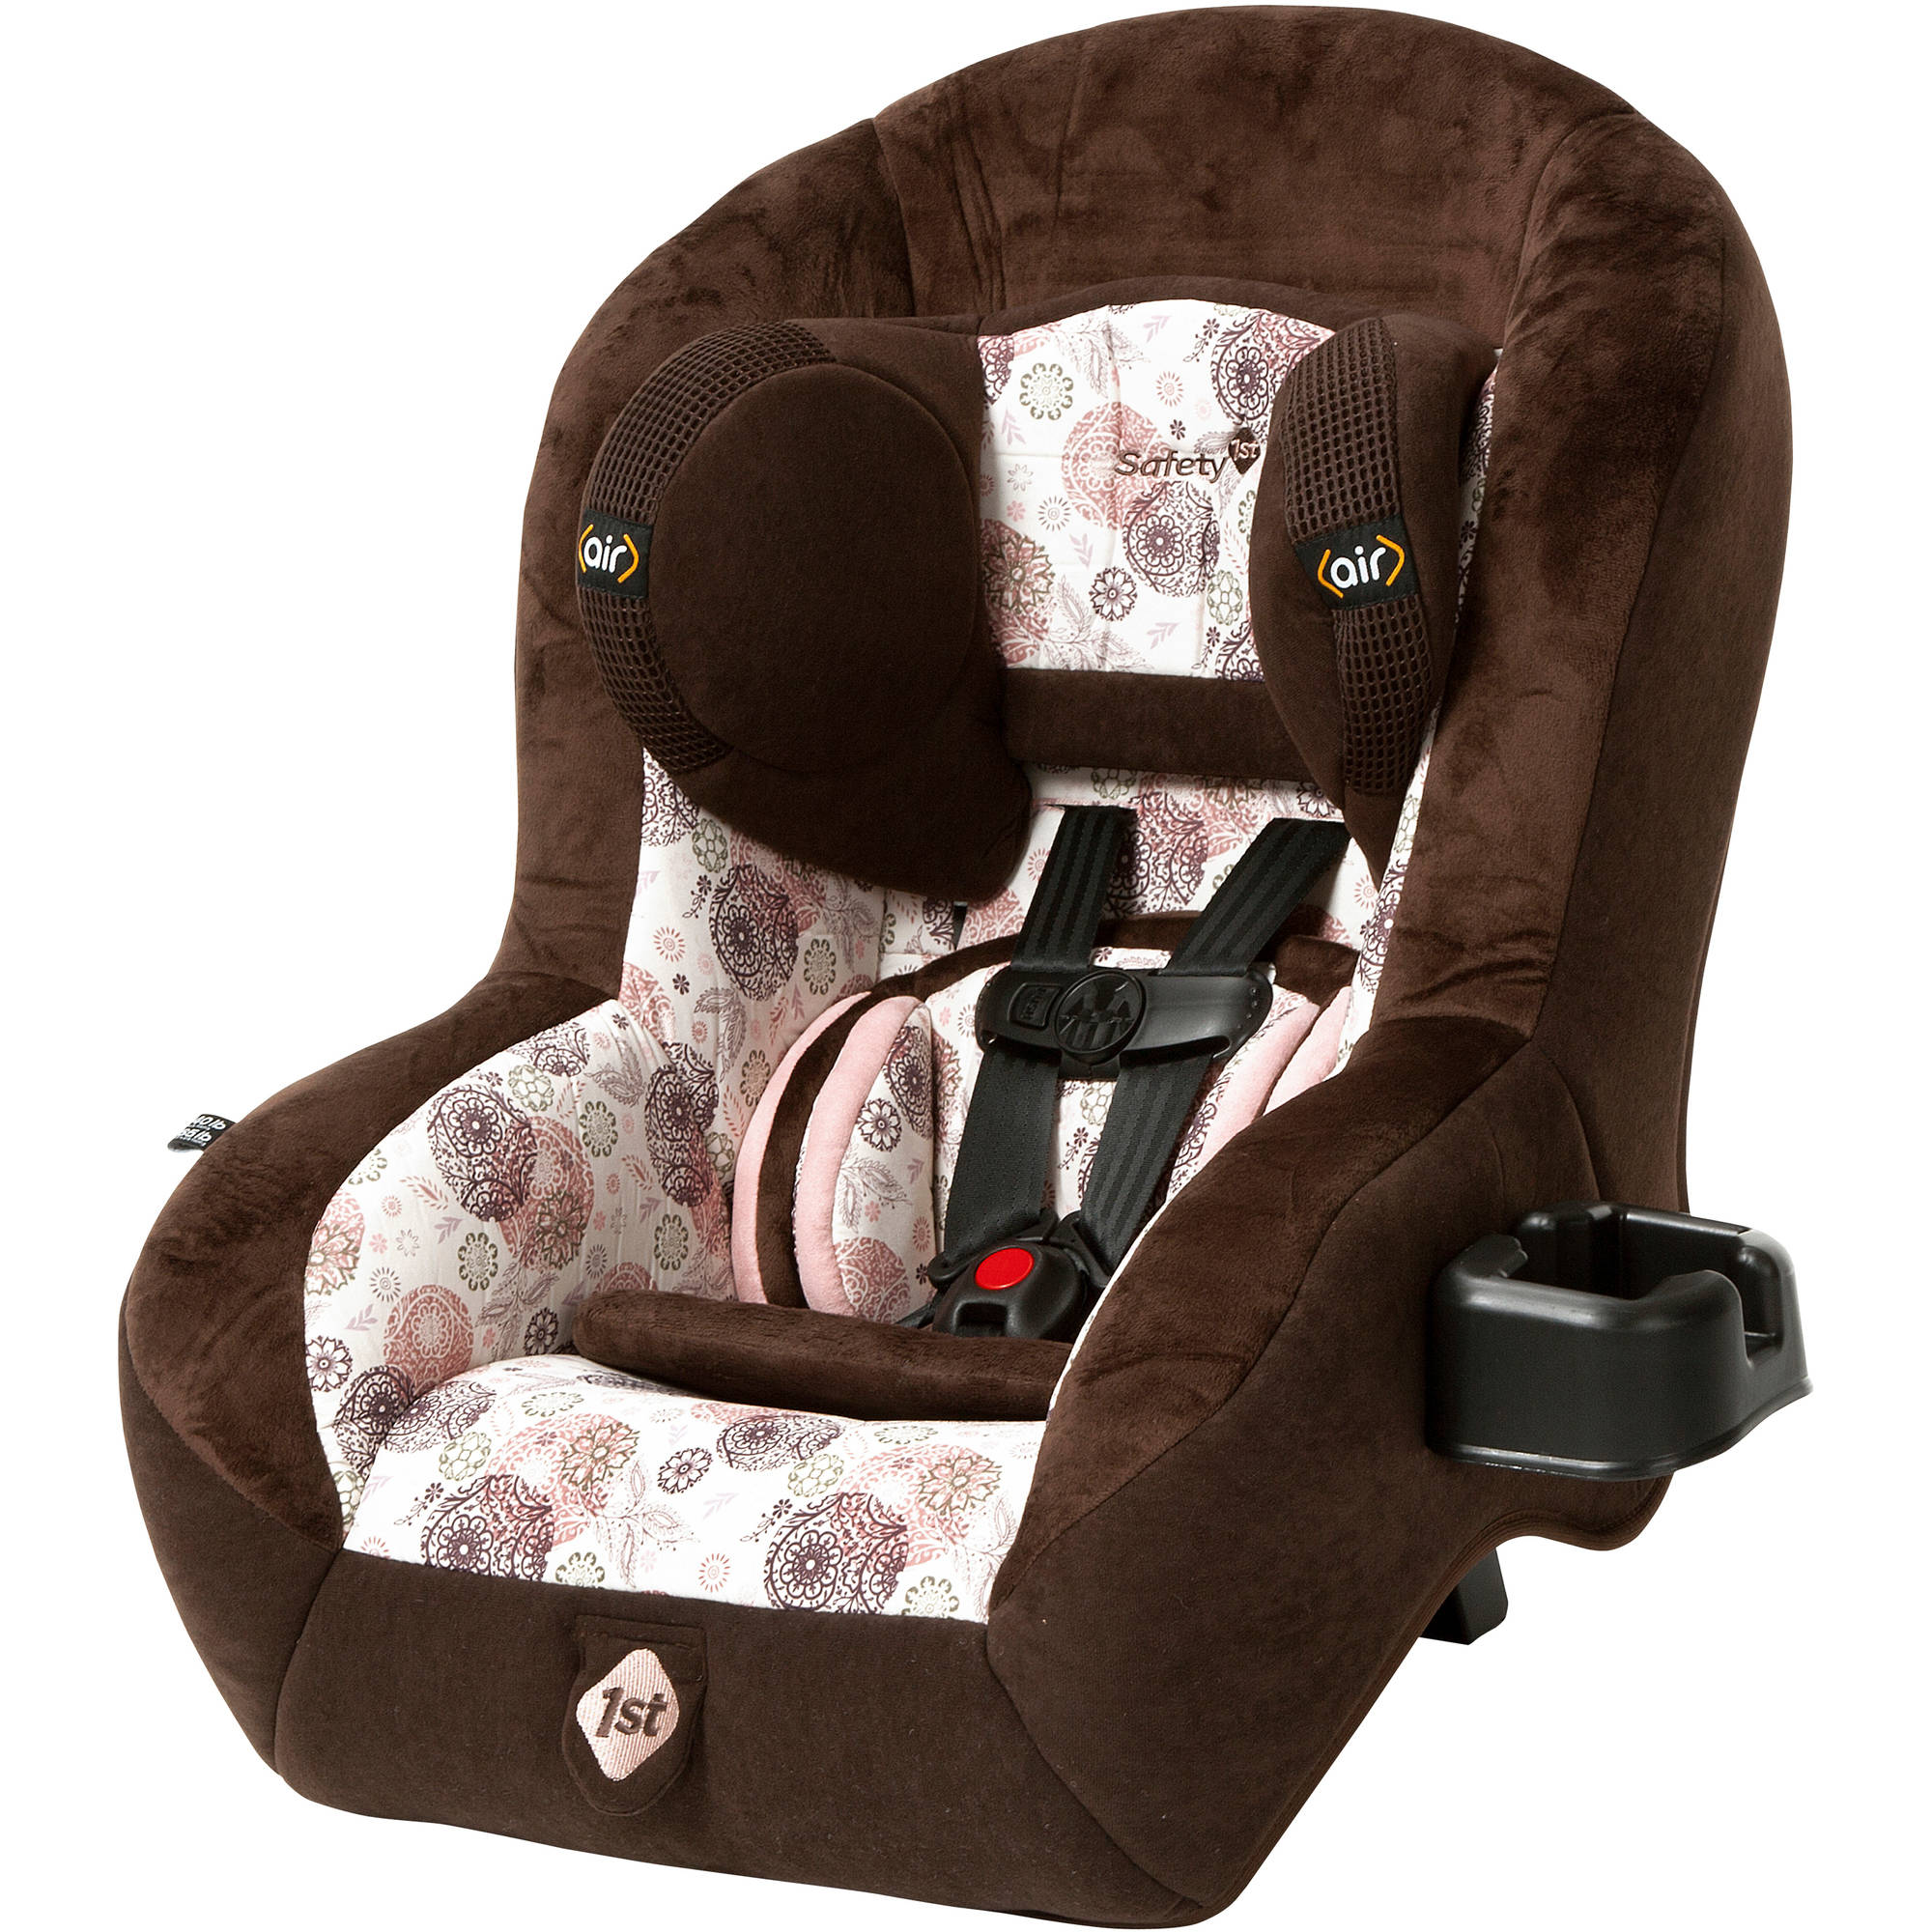 Safety 1st Chart Air 65 Convertible Car Seat, Yardley